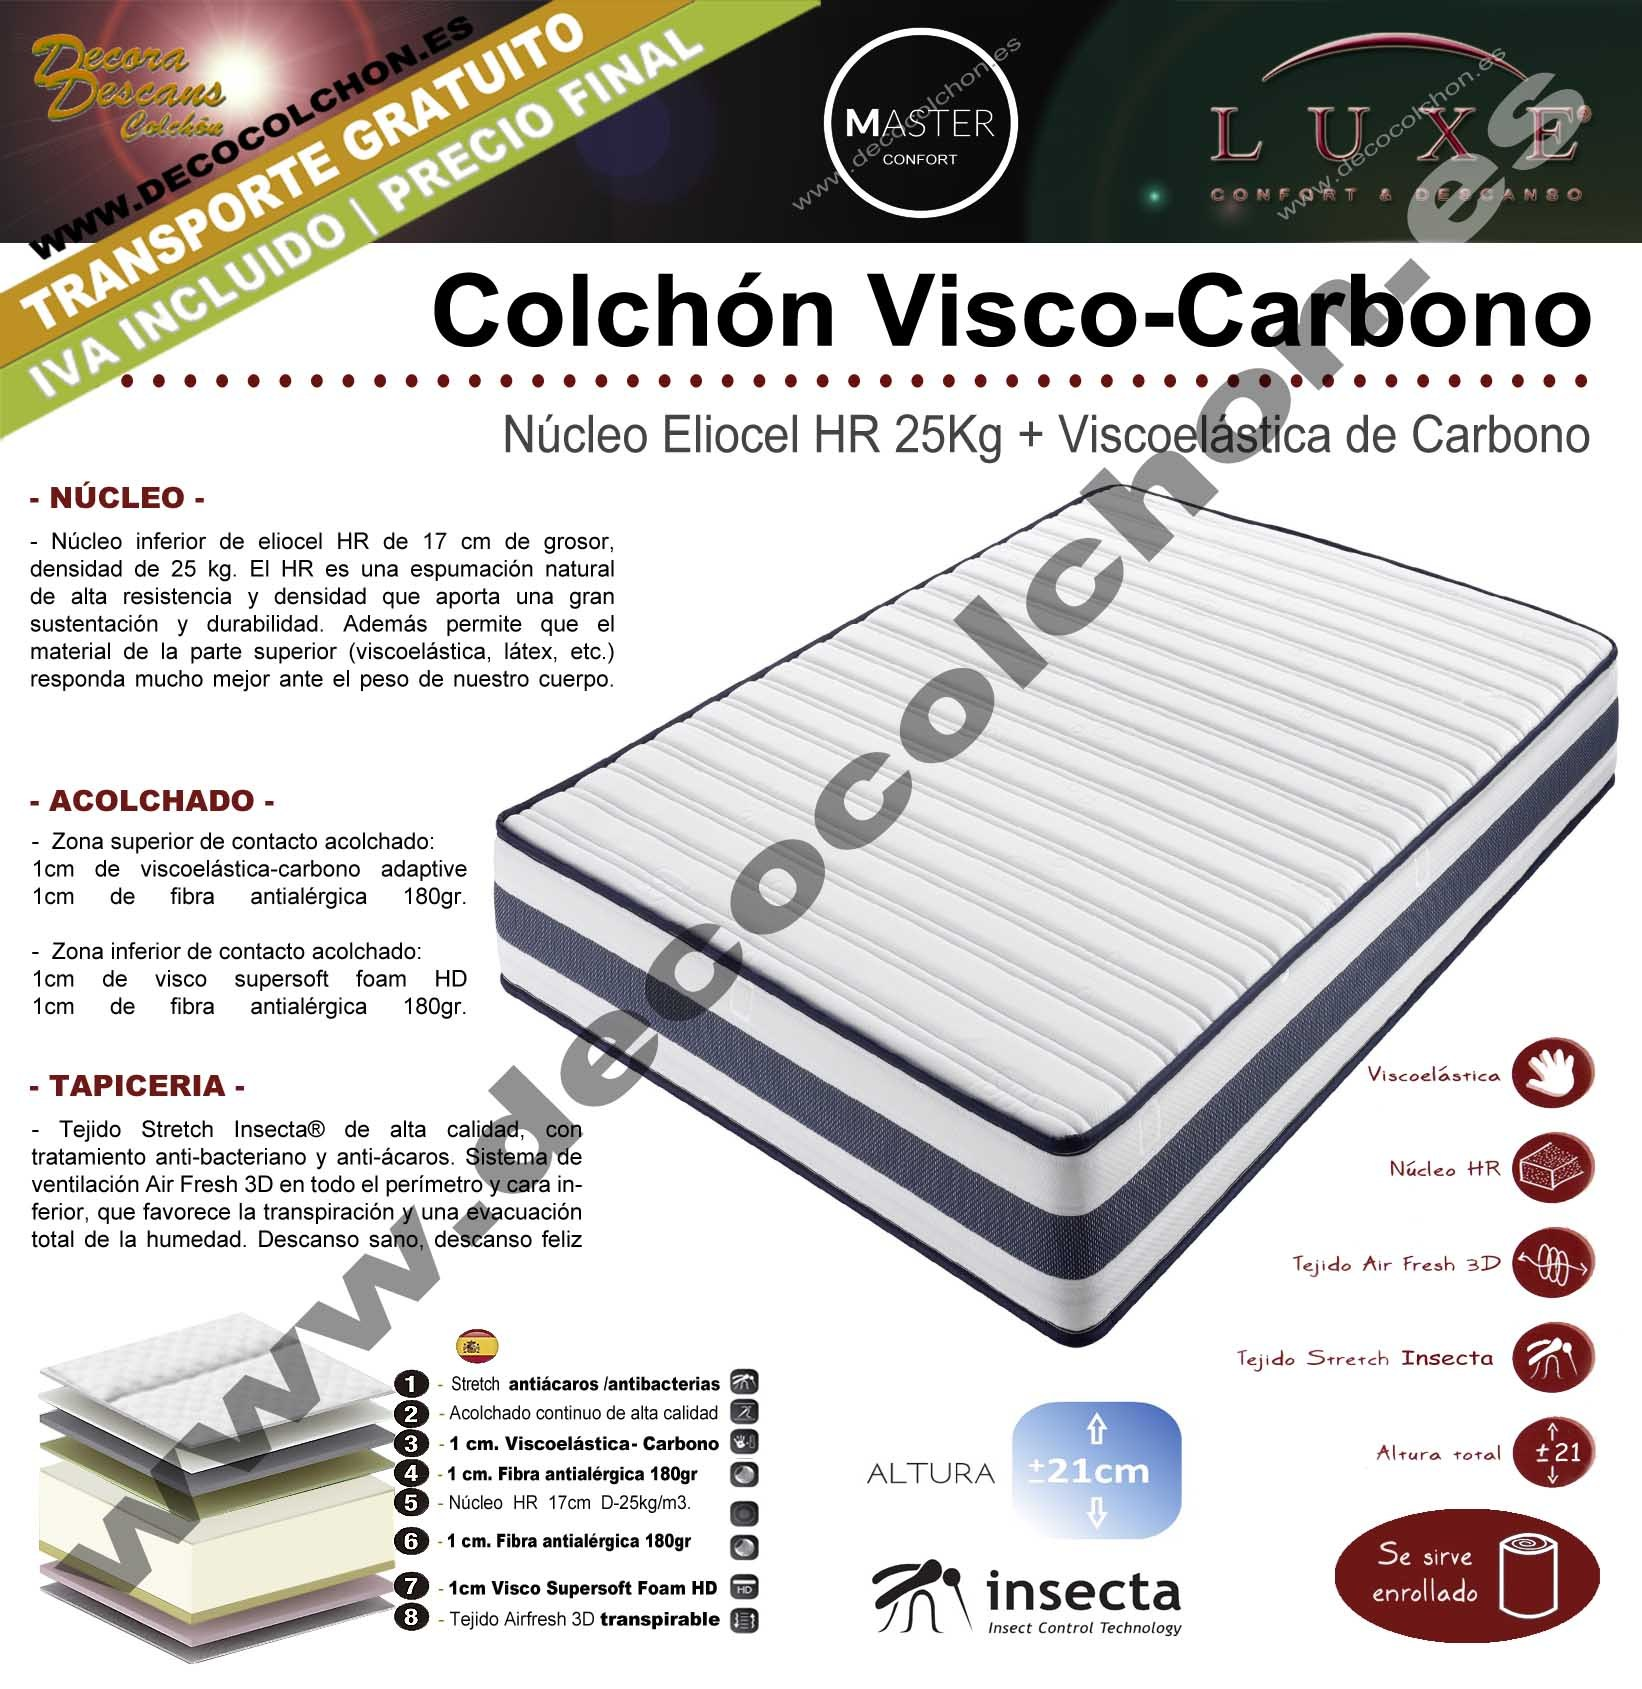 COLCHON VISCO-CARBONO de LUXE | Decocolchon Decora Descans